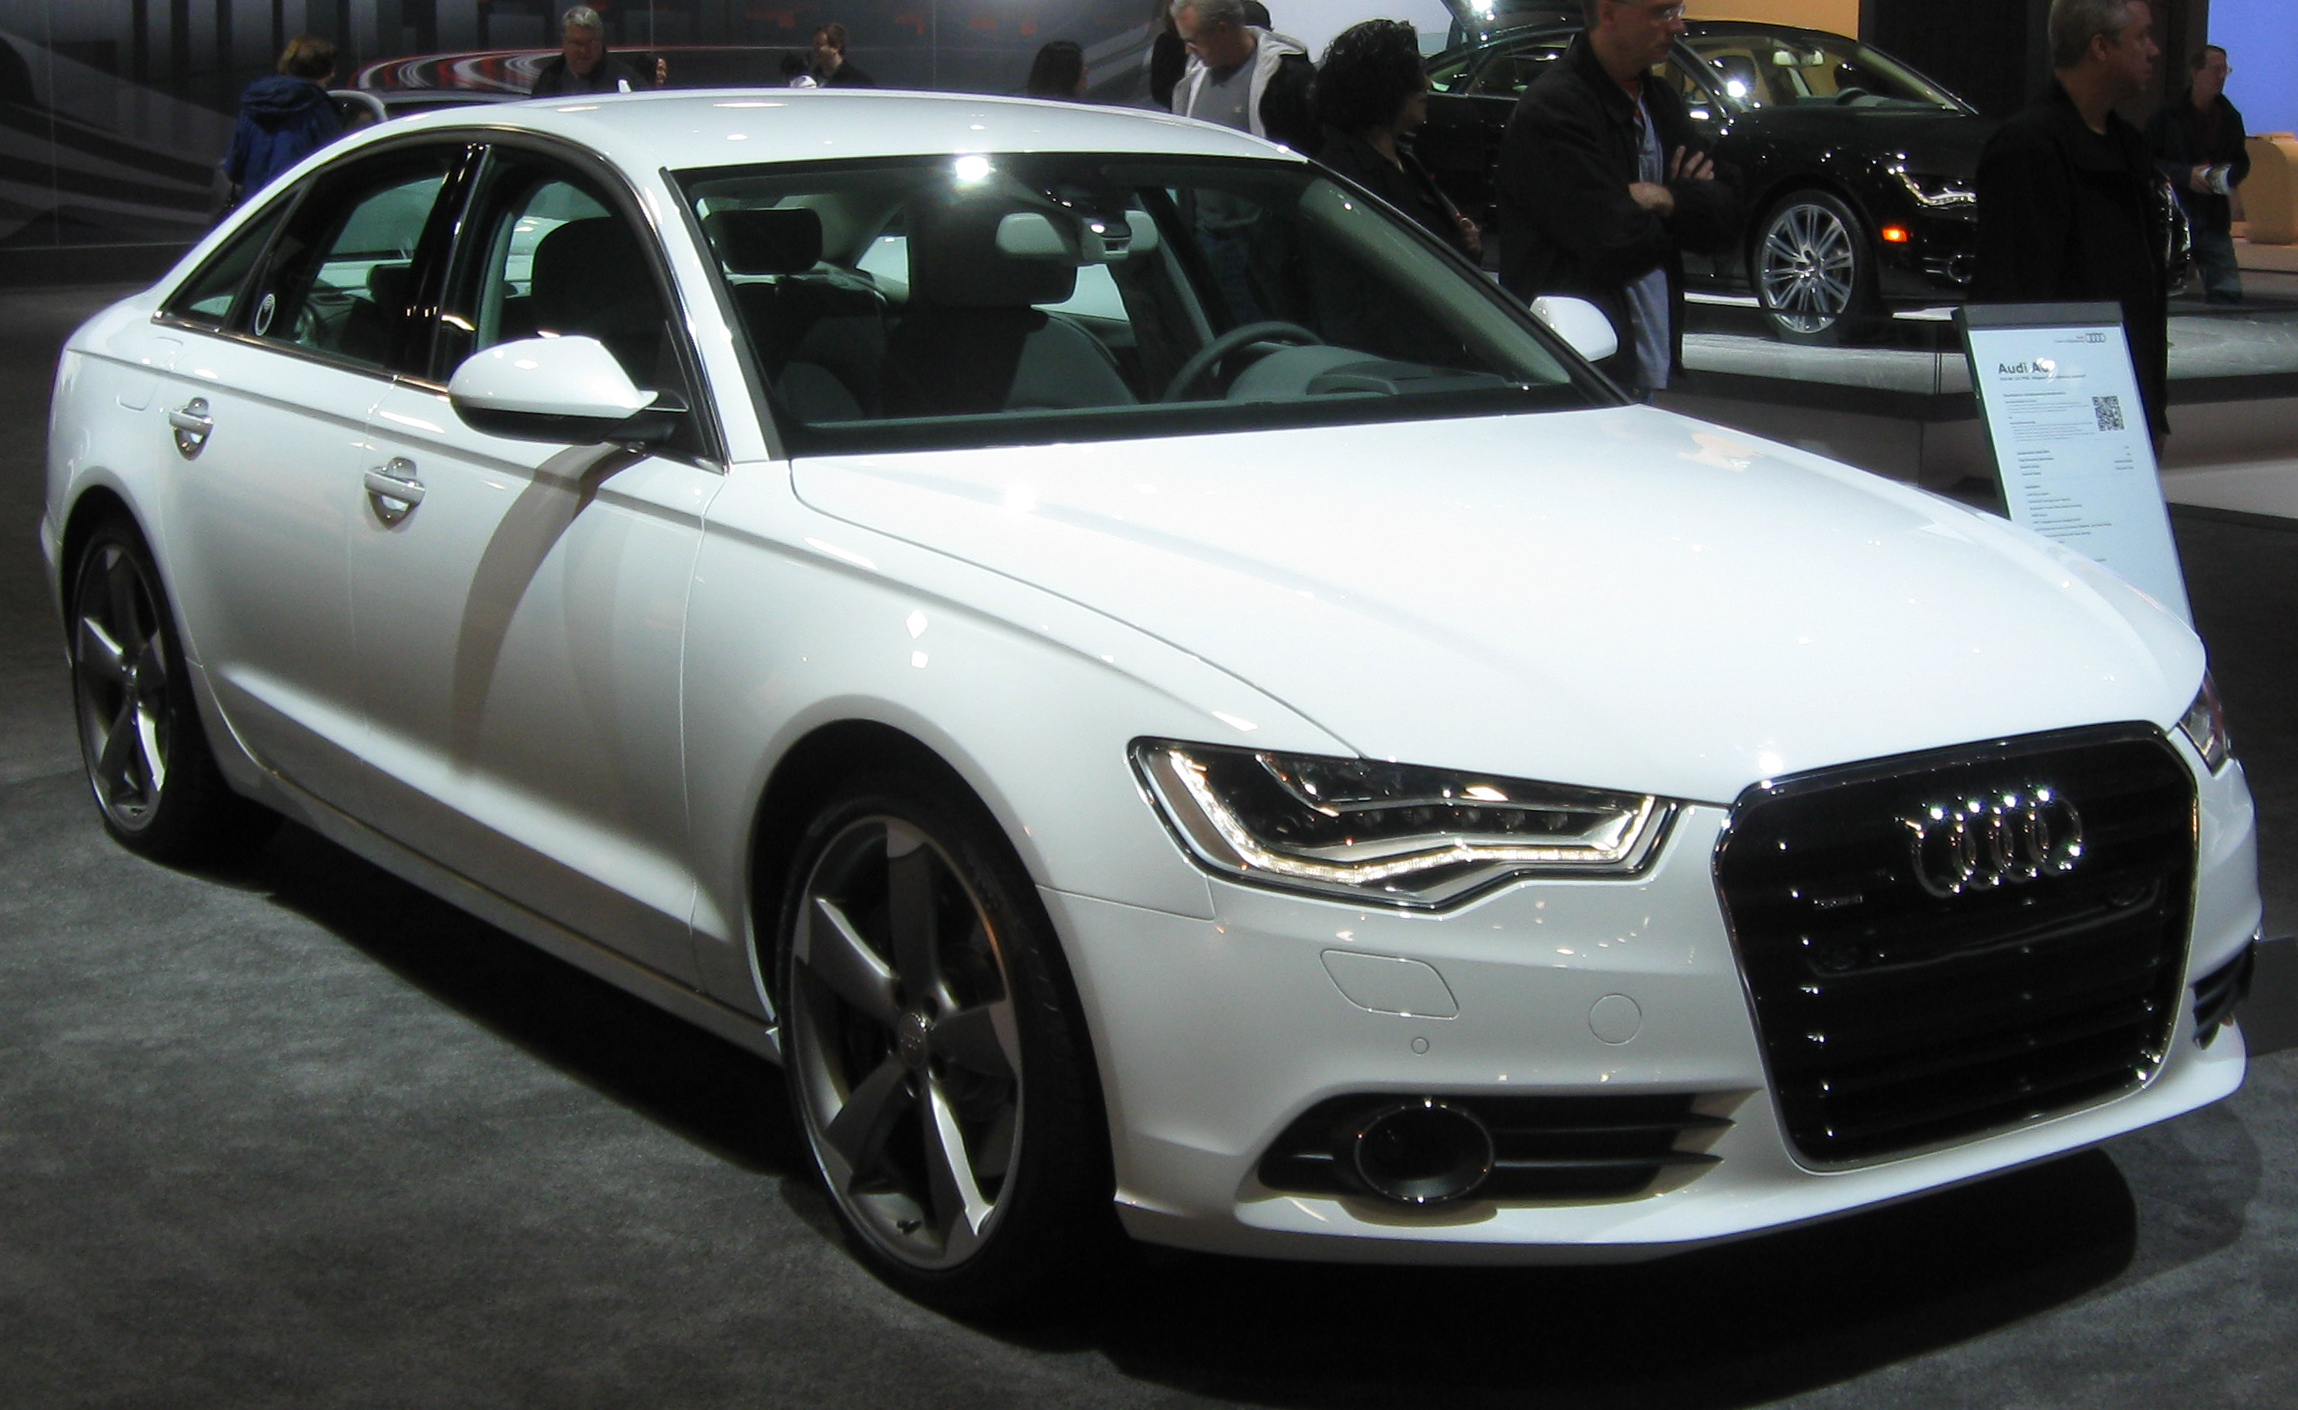 2012 Audi A6 Reviews and Rating  Motor Trend